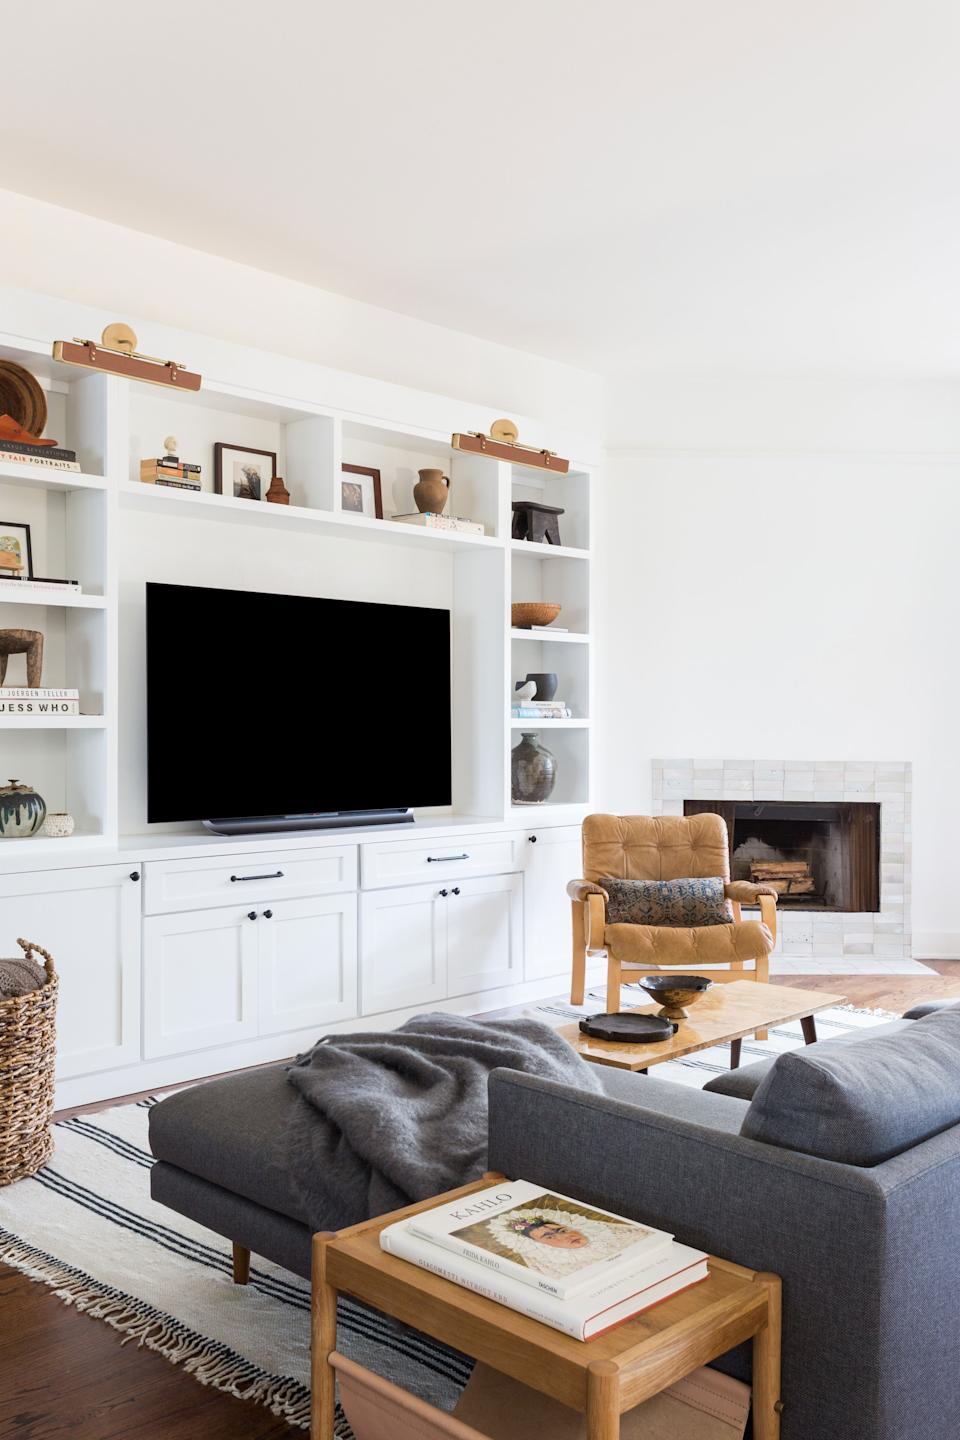 "<div class=""caption""> The first floor of the home is essentially one large space, but the family room acts as a cozy gathering spot. The couch is from <a href=""https://www.article.com/"" rel=""nofollow noopener"" target=""_blank"" data-ylk=""slk:Article"" class=""link rapid-noclick-resp"">Article</a>, the chair is a vintage Bruno Mathsson, and the rug is from <a href=""https://shoppe.amberinteriordesign.com/"" rel=""nofollow noopener"" target=""_blank"" data-ylk=""slk:Shoppe Amber Interiors"" class=""link rapid-noclick-resp"">Shoppe Amber Interiors</a>. The built-ins were custom designed by ABD. </div>"